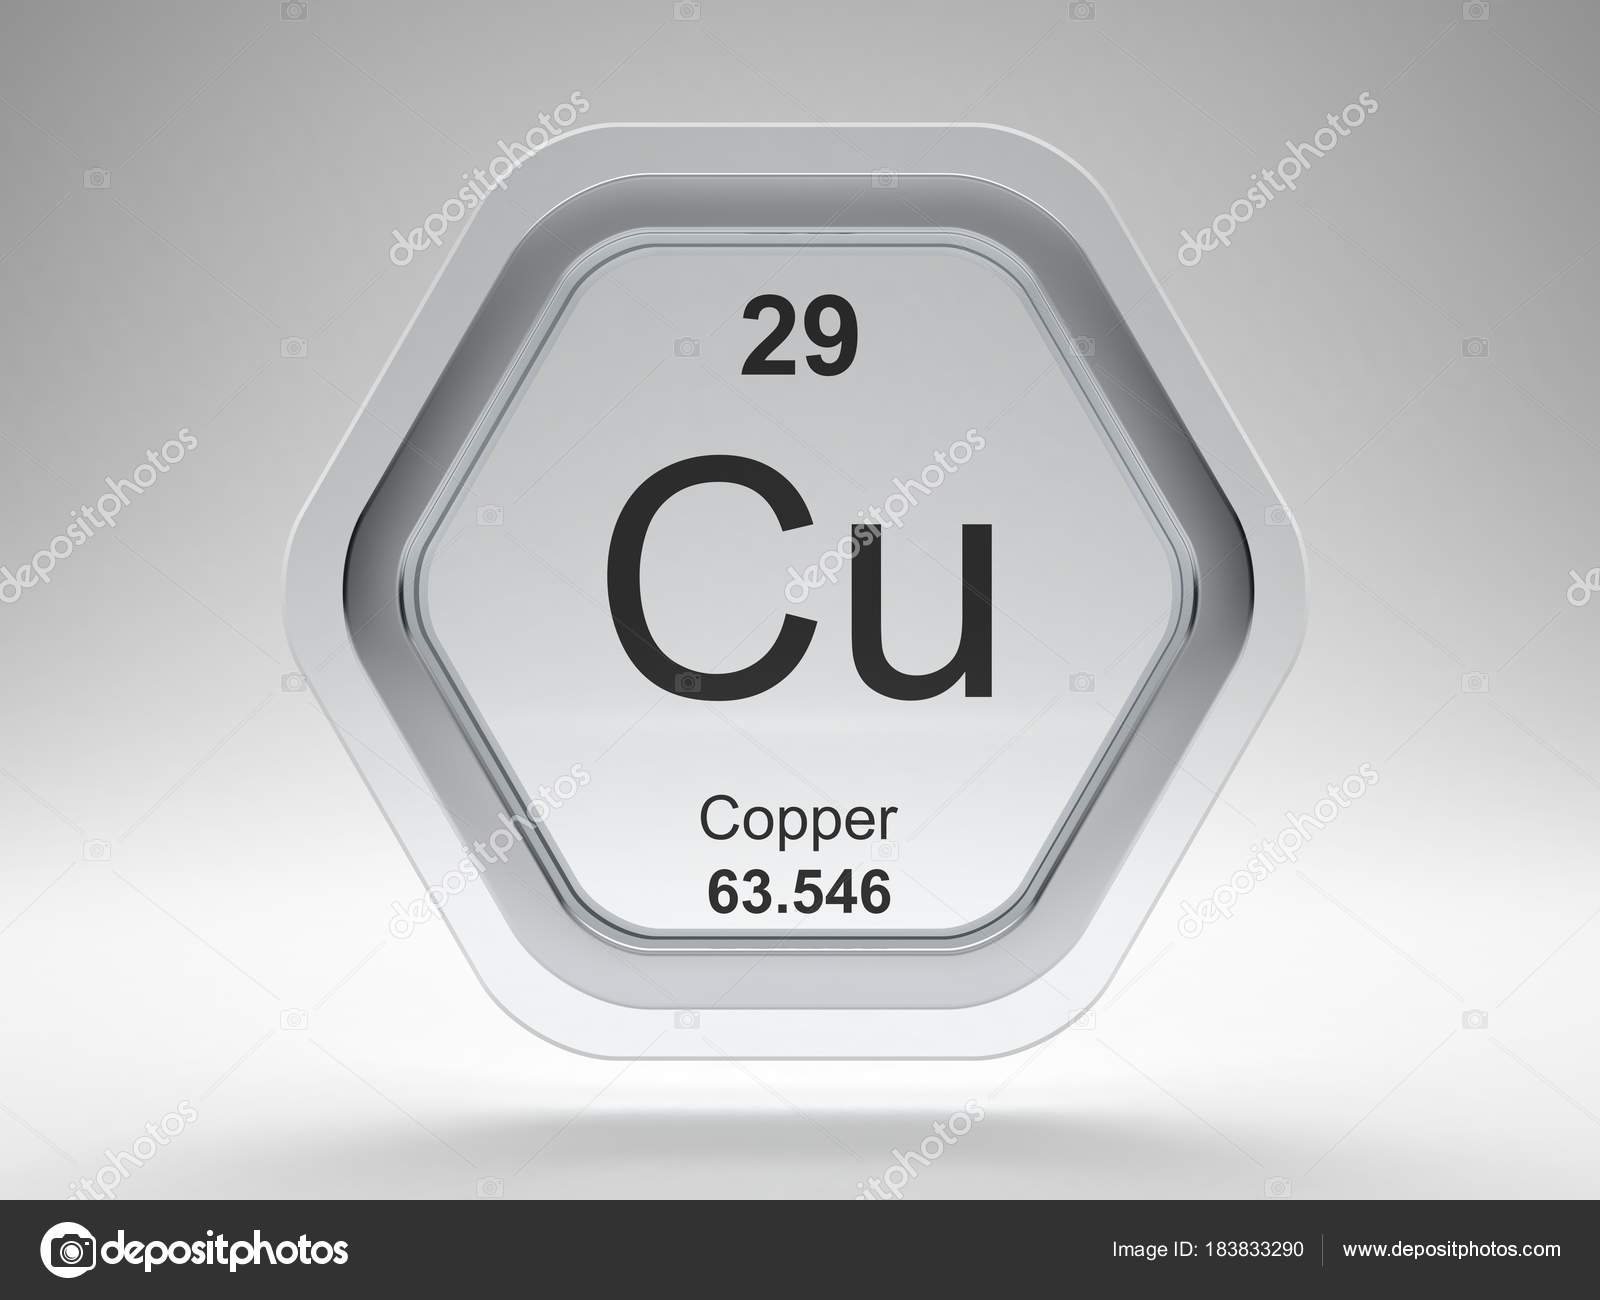 Copper symbol periodic table modern glass steel icon stock photo copper symbol from the periodic table on modern glass and steel icon photo by conceptw urtaz Choice Image